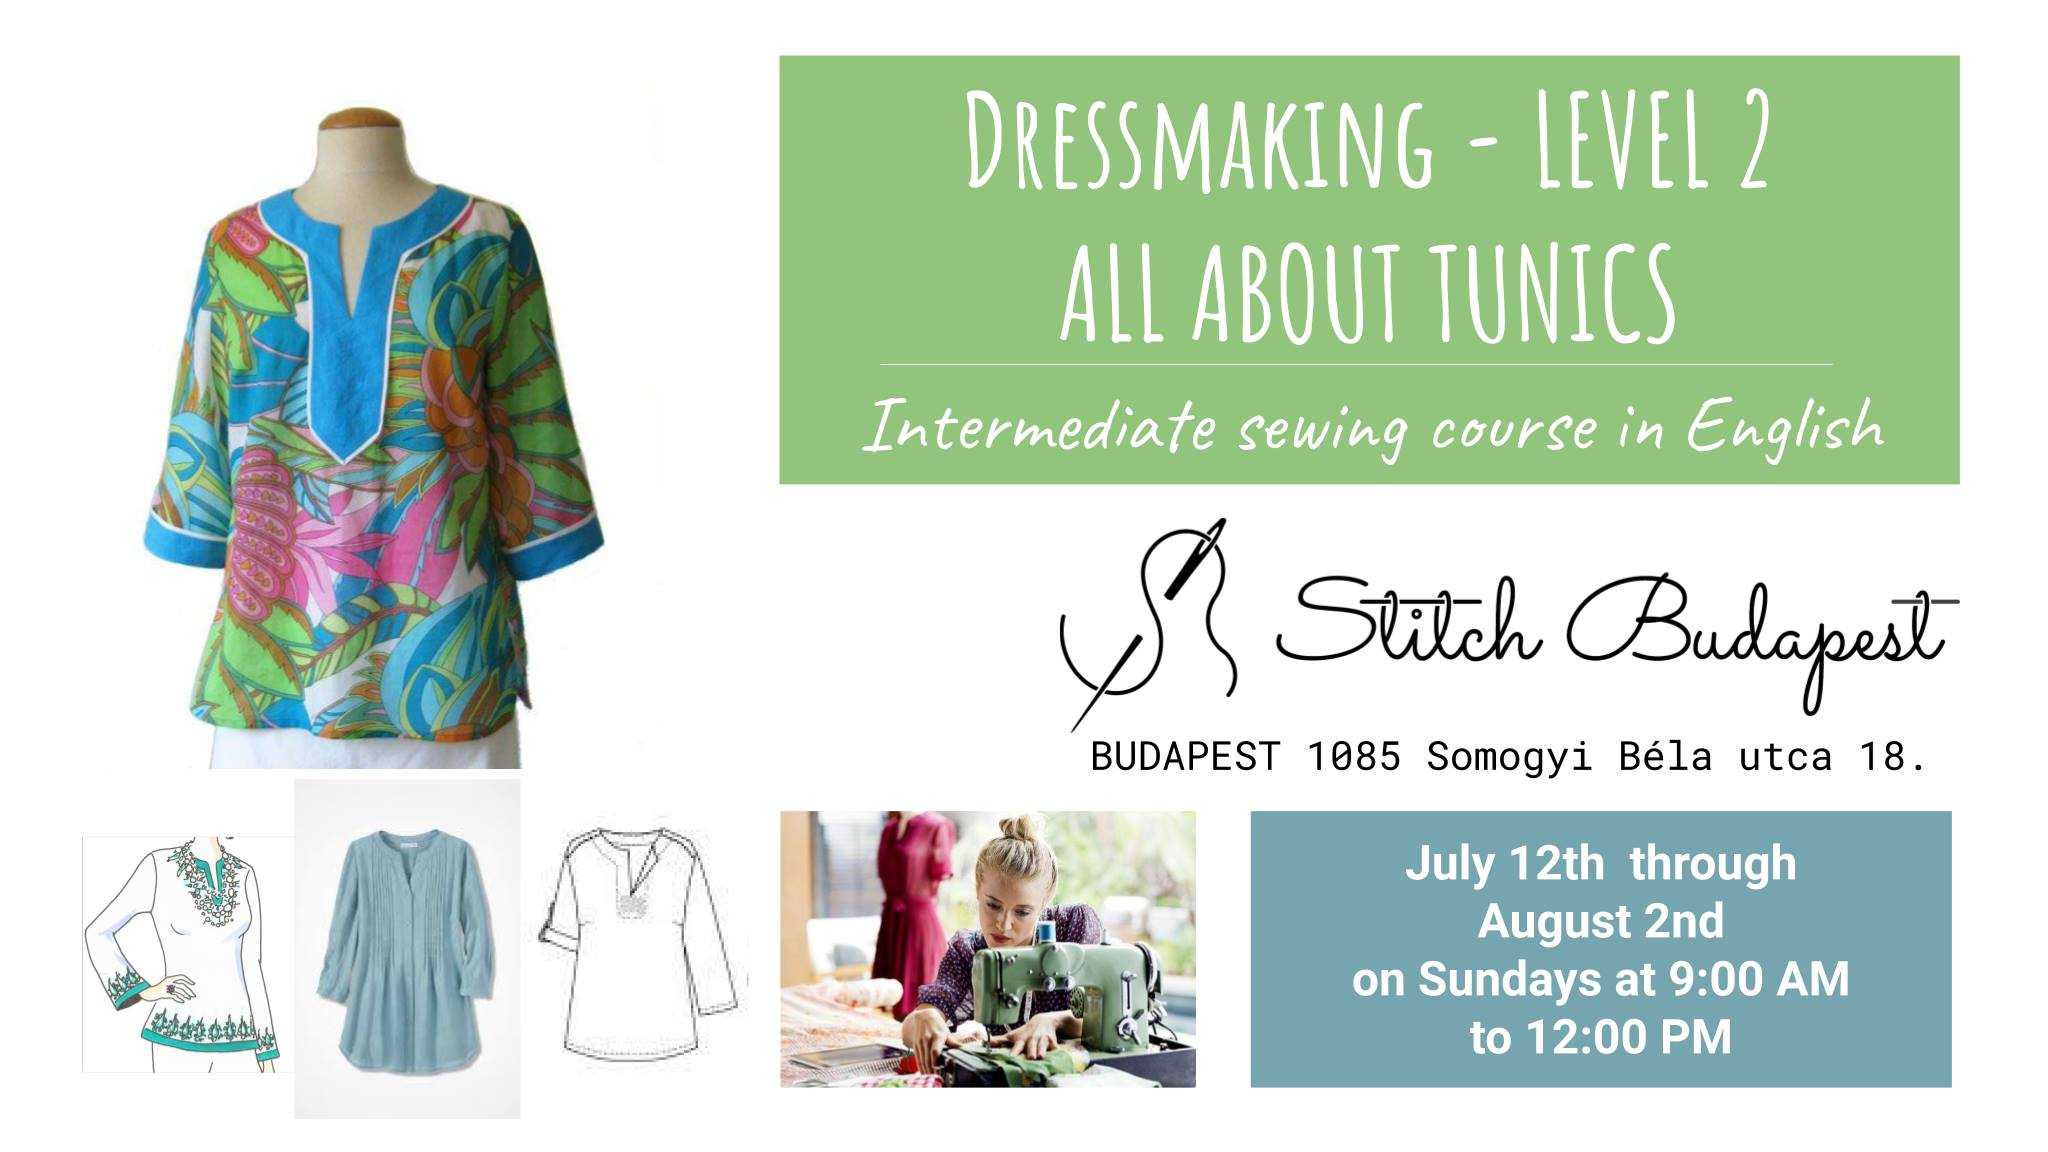 Dressmaking Workshop In English - Level 2: All AboutTunics Intermediate Sewing